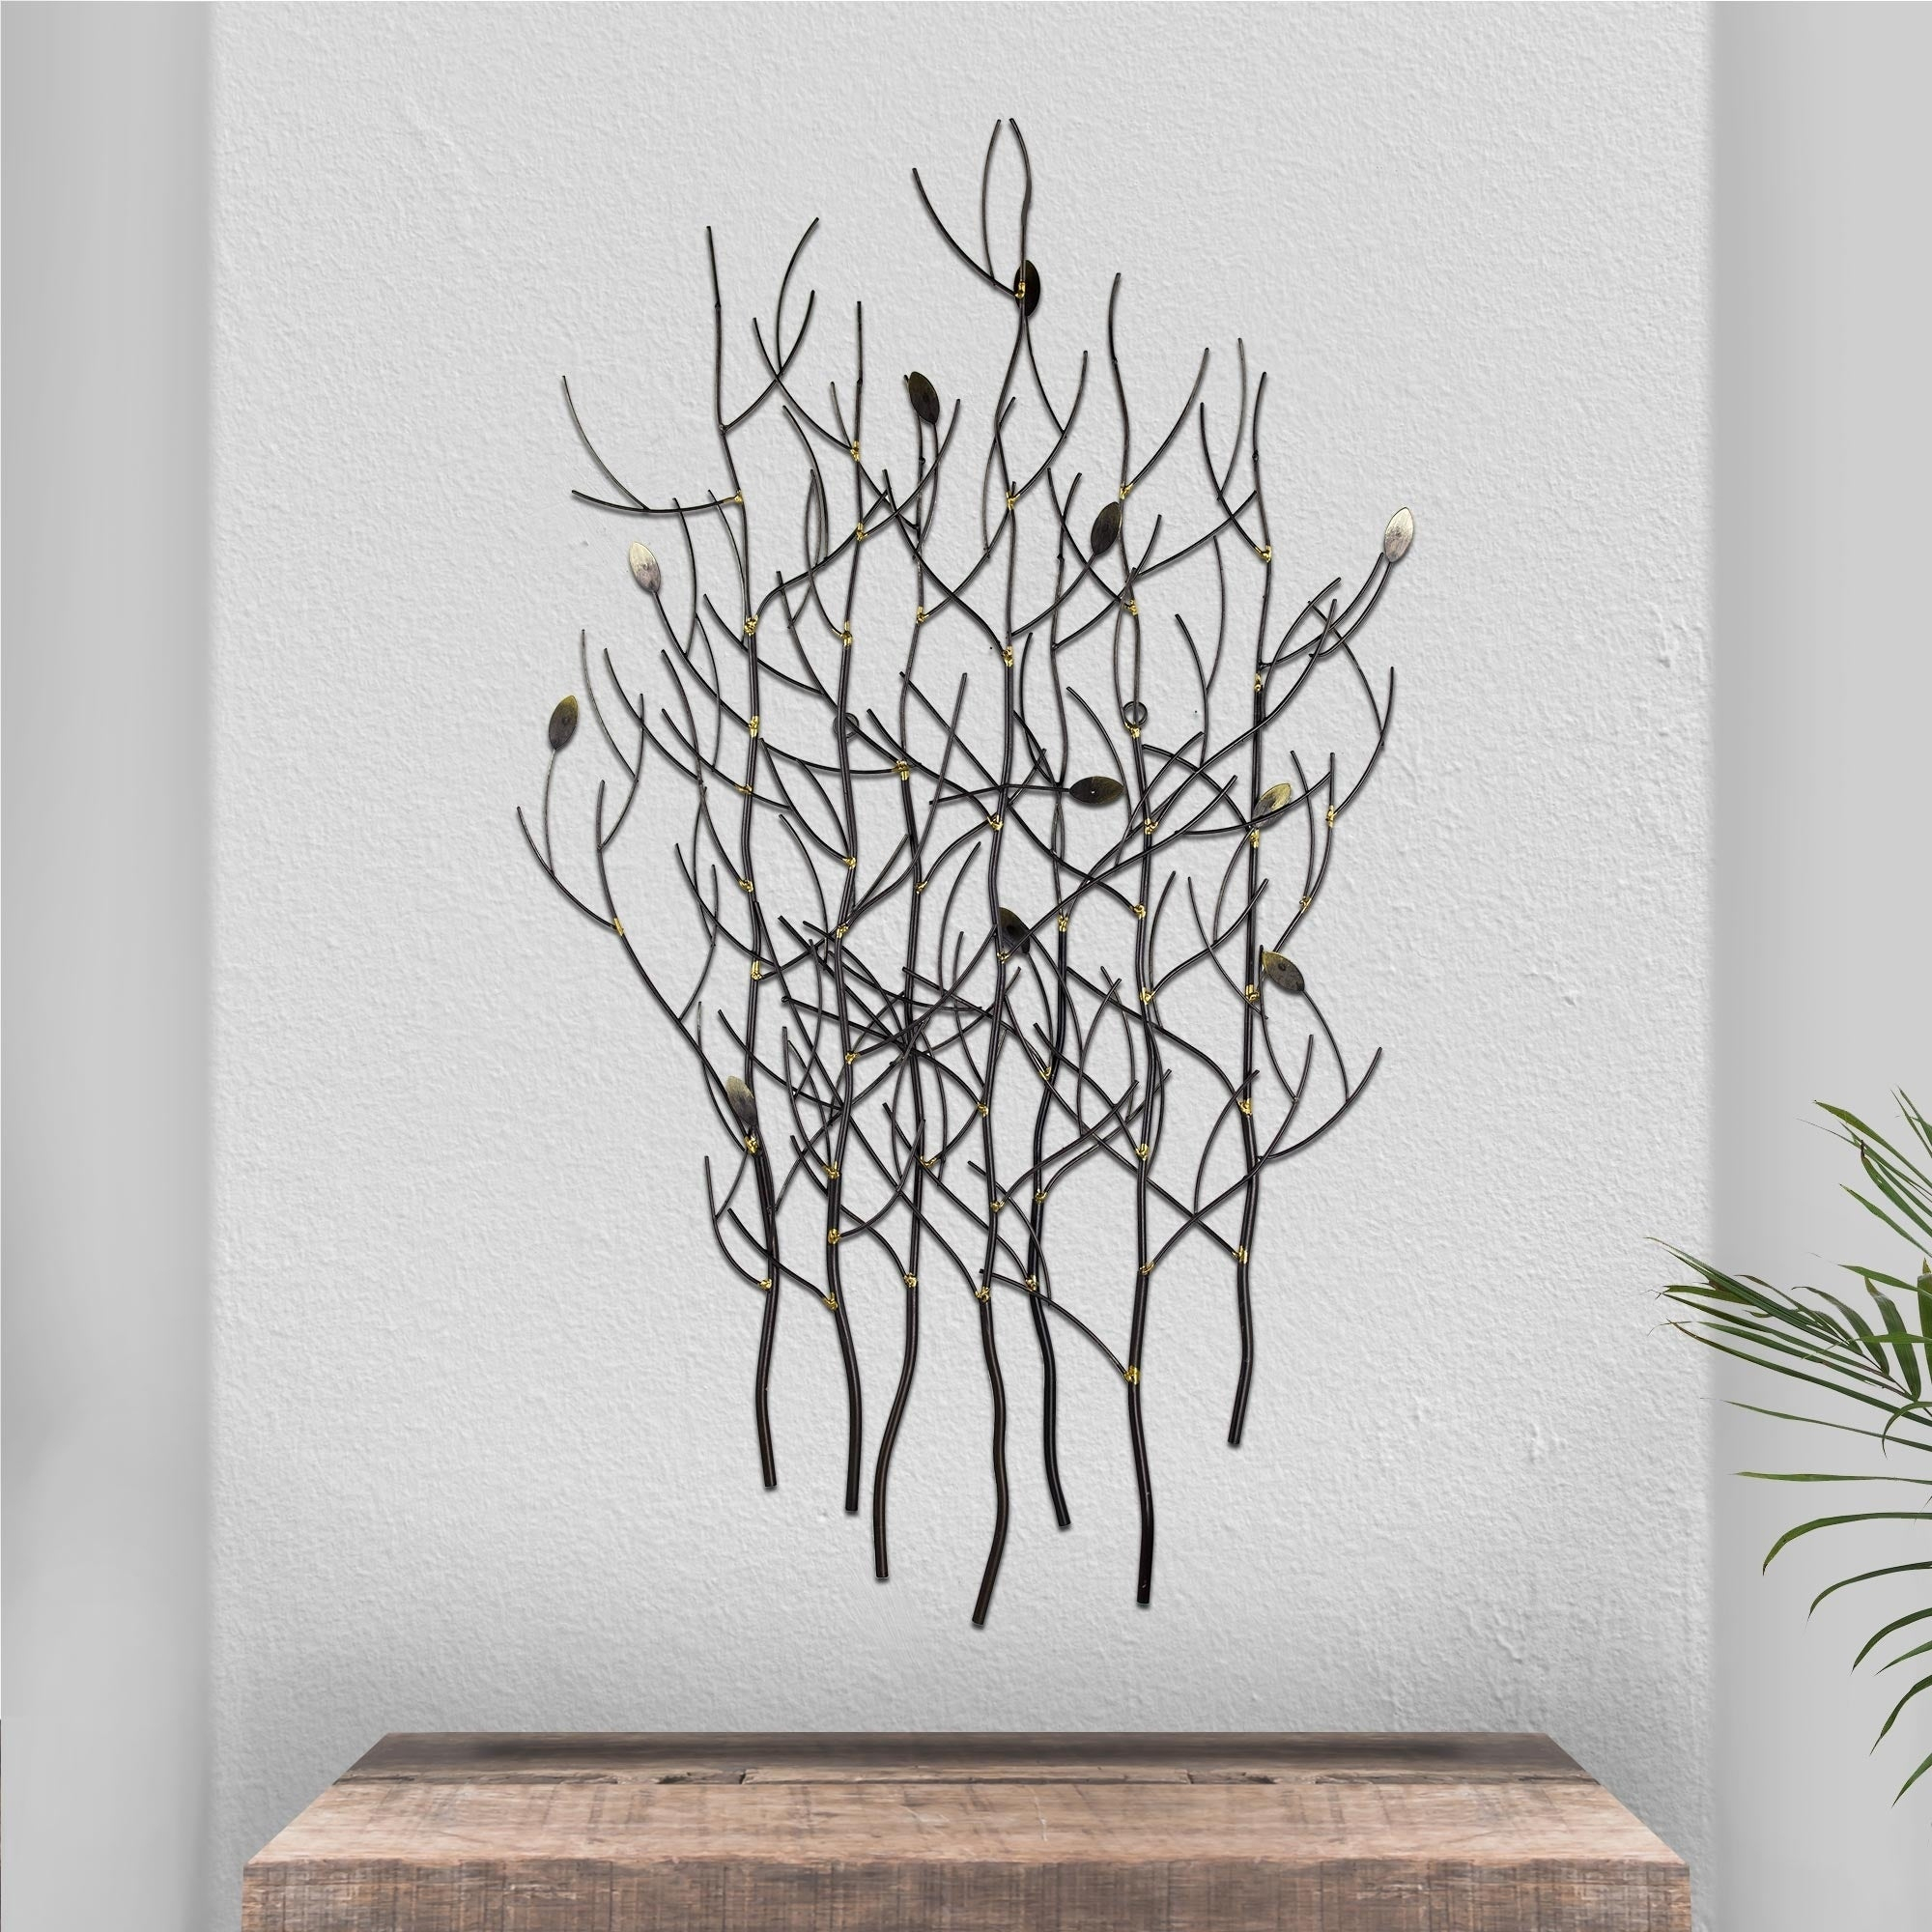 Discontinued   Silver Branches Gold Leaves Metal Sculpture Wall Art Decor  Accent Intended For Leaves Metal Sculpture Wall Decor (Photo 14 of 30)